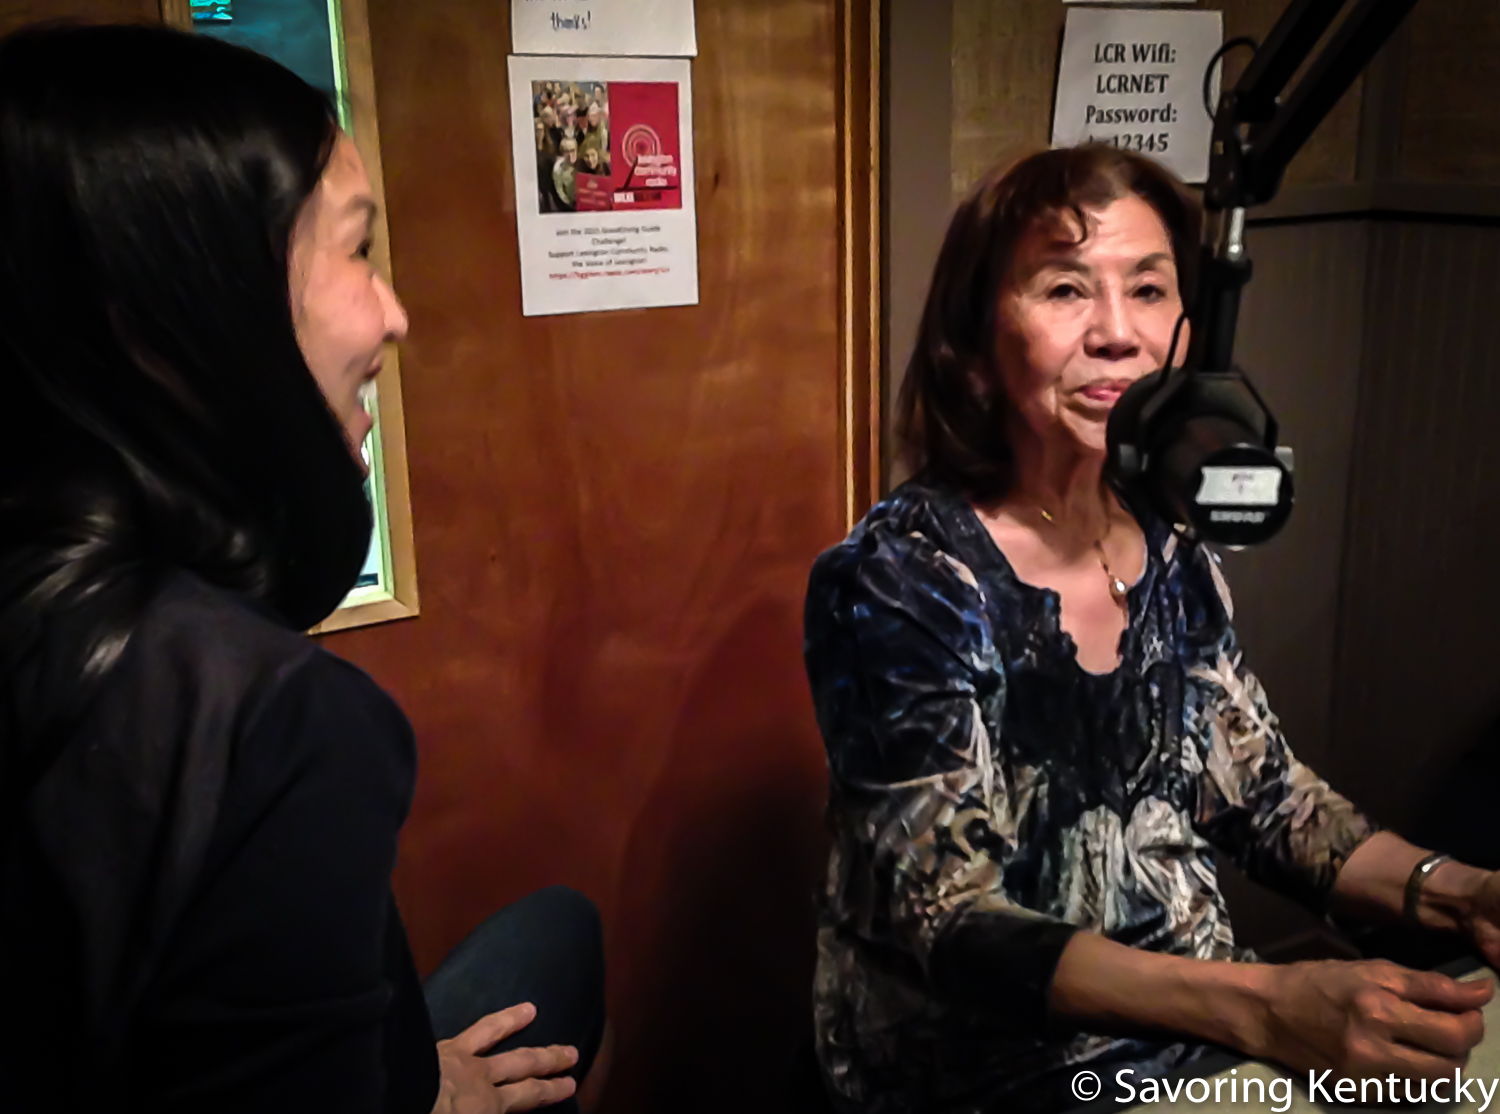 From left, Brigitte Nguyen Prather host of KY Proud Kitchen on Sundays , 11:30am on Fox56, and her mother Mai Tran, famed cook and promoter of cooking and cuisine, translator, world traveler, and advocate for nutrition as an essential part of healing from cancer.